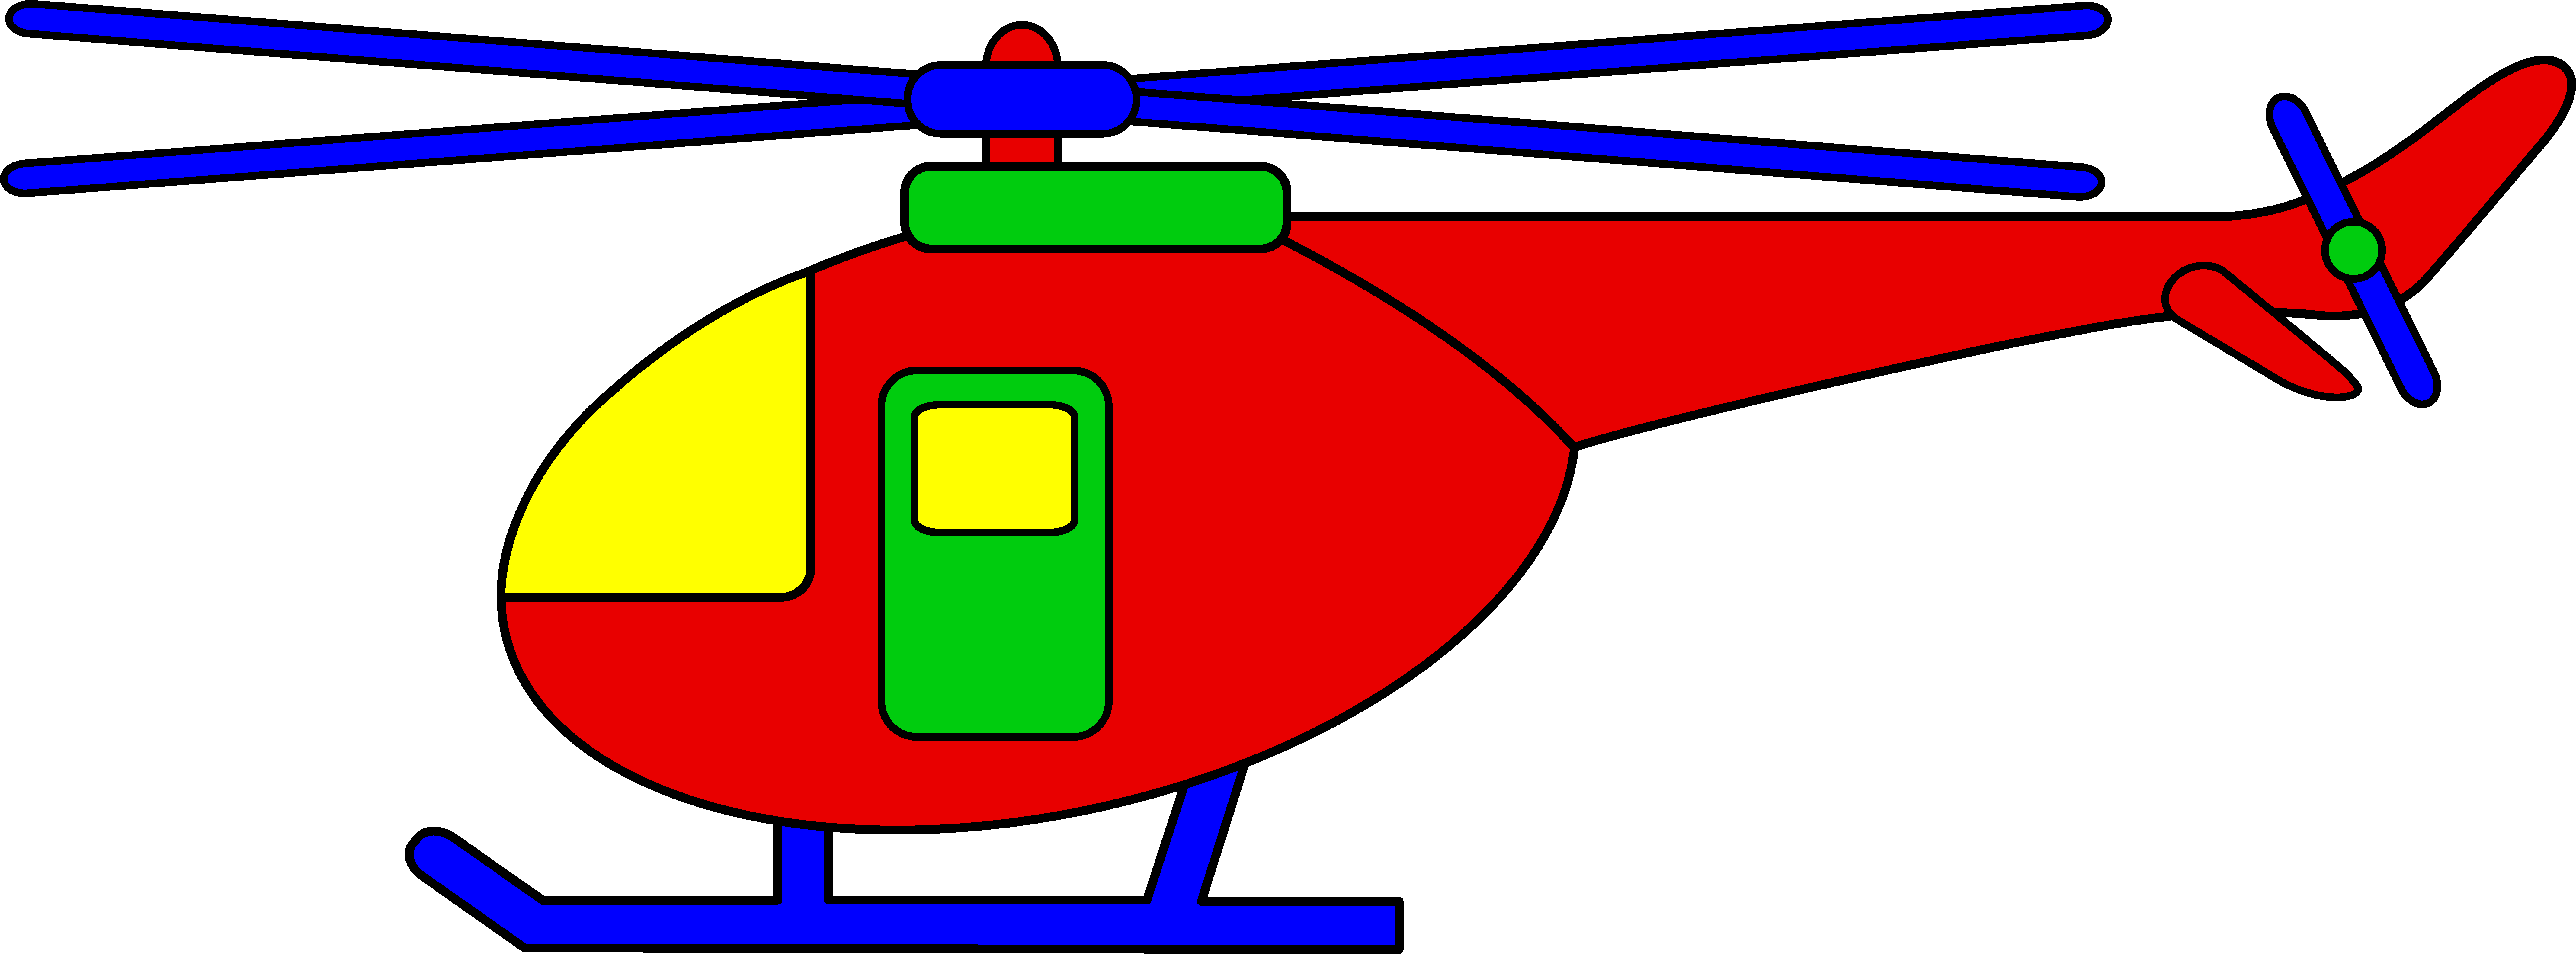 Helicopter clipart image graphic royalty free download Helicopter Clipart   Clipart Panda - Free Clipart Images graphic royalty free download